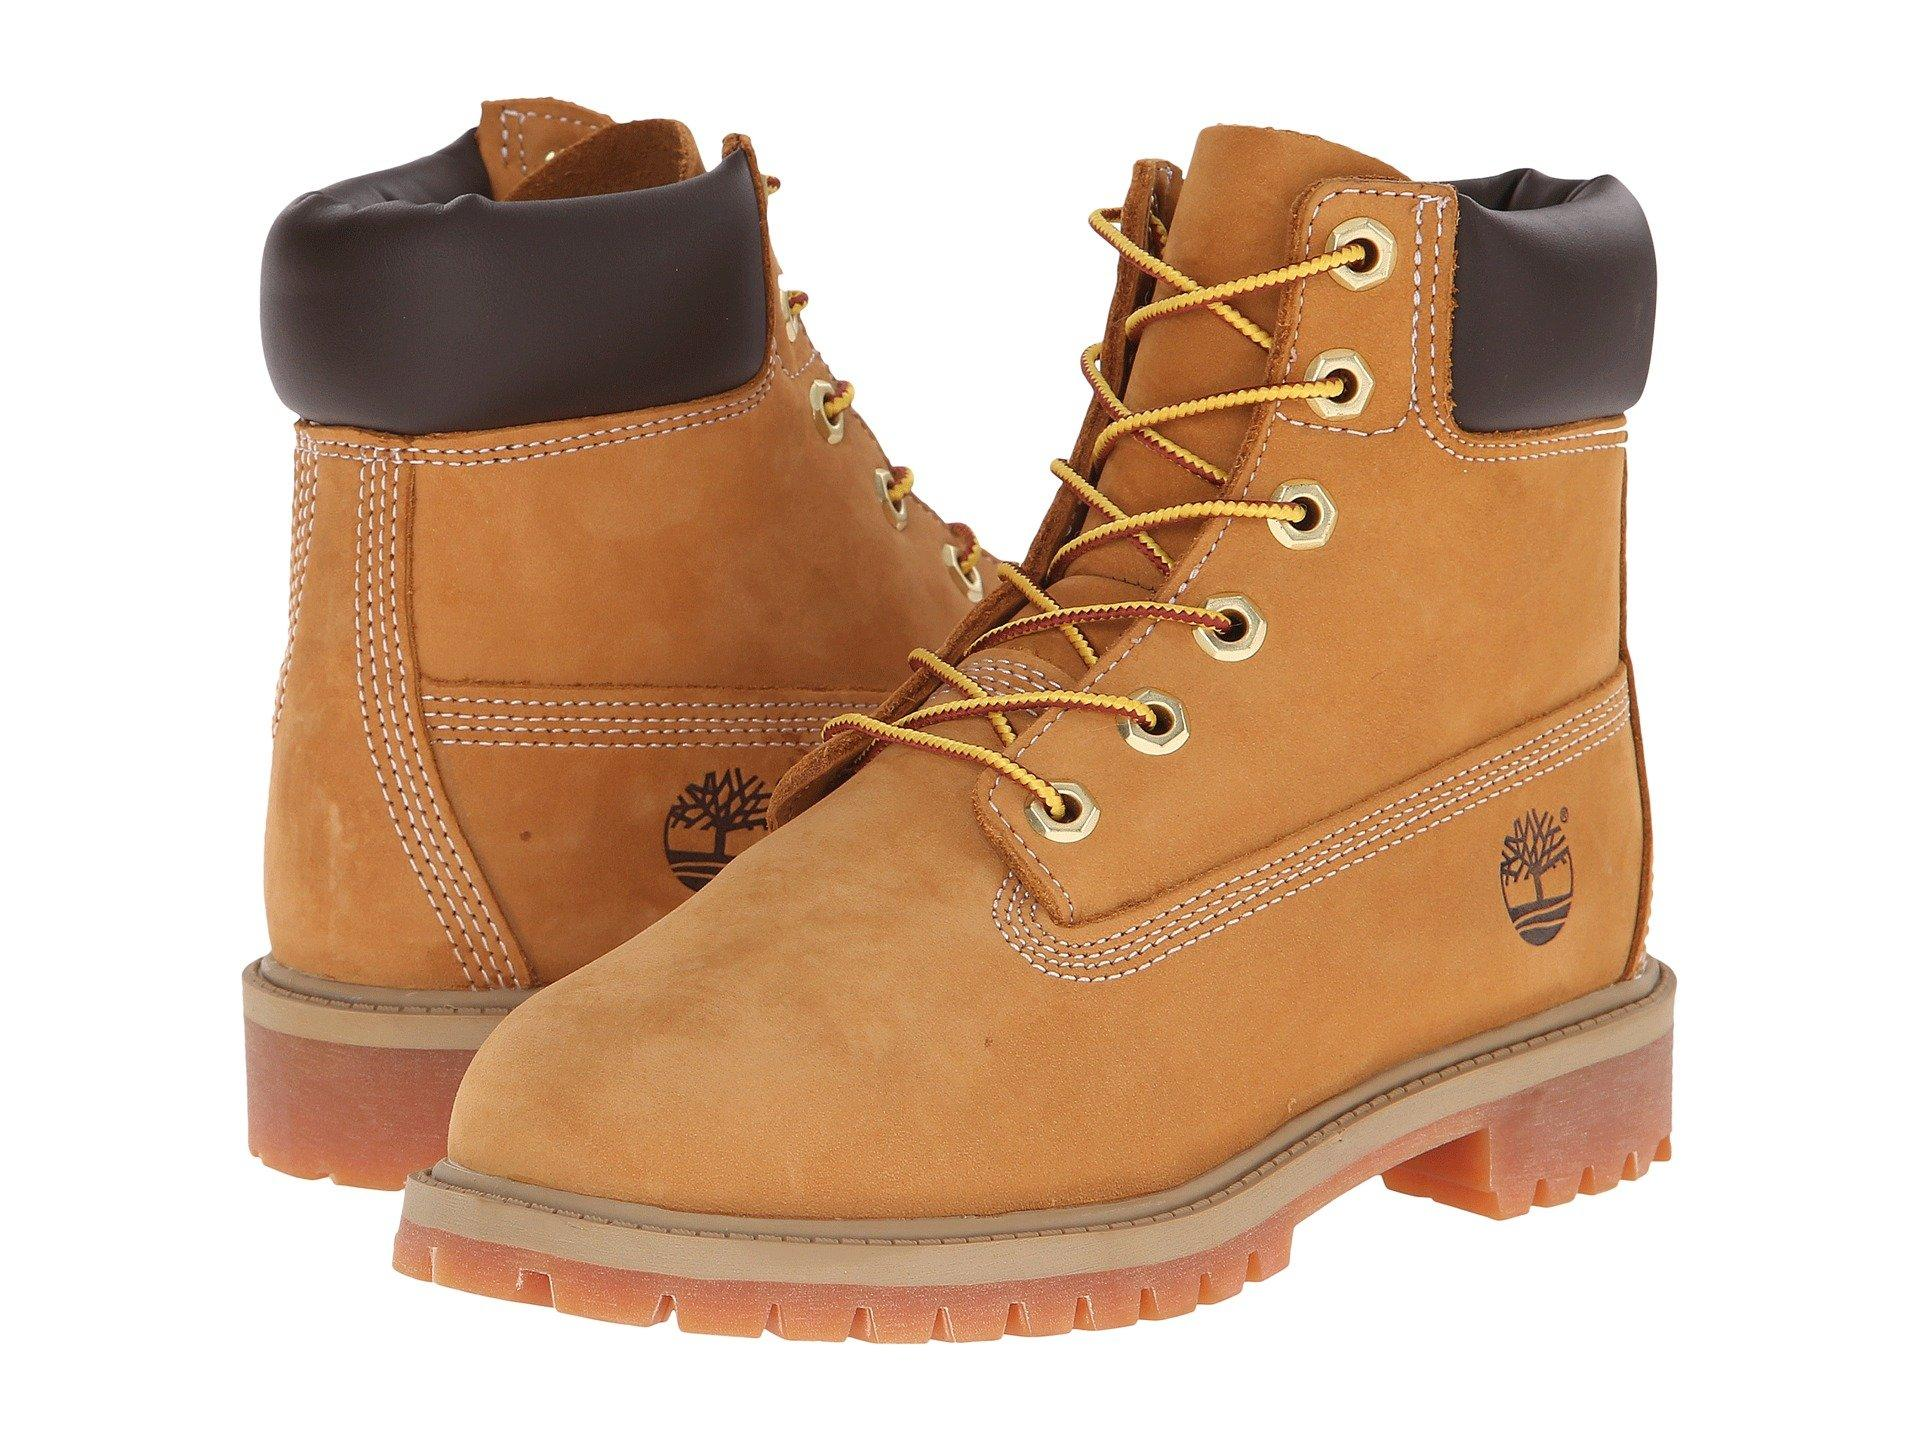 Timberland Boots   Shoes  62915c846